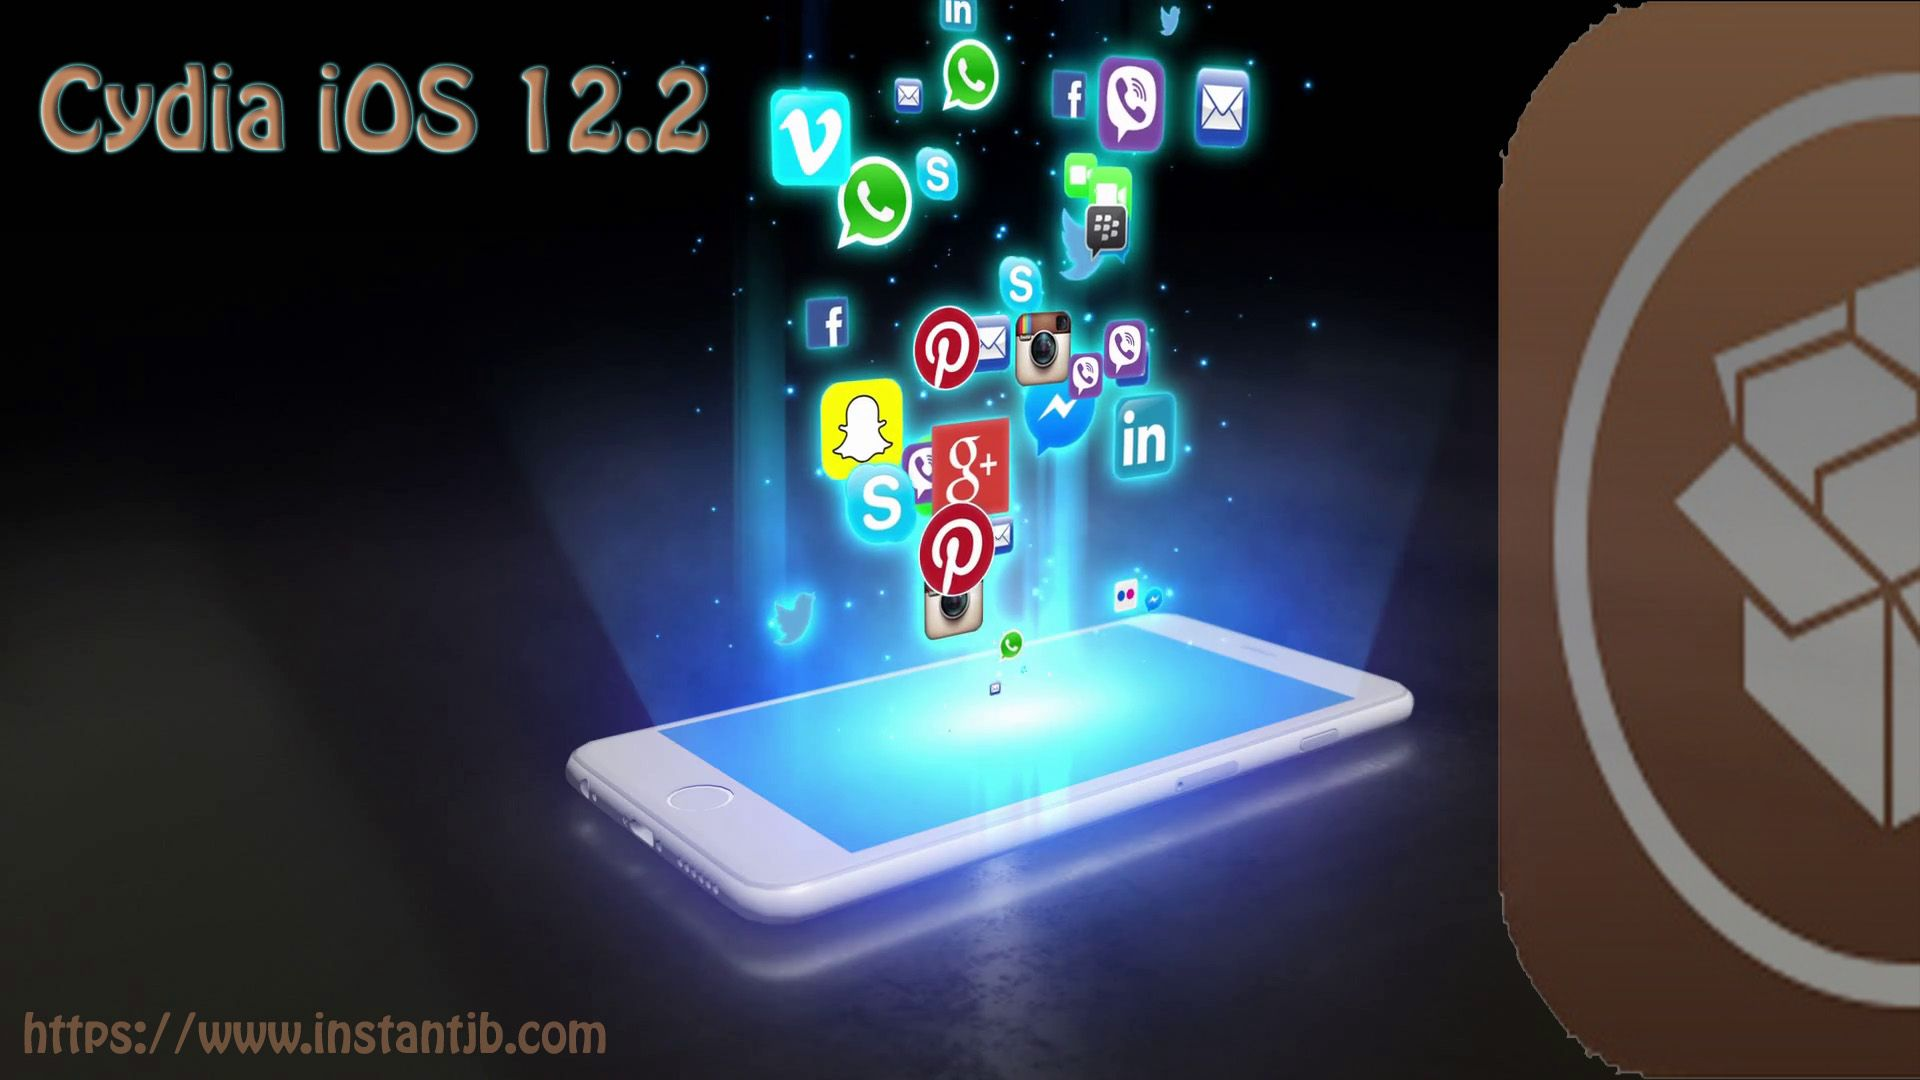 The most awaited Cydia iOS 12.2 is now available for the